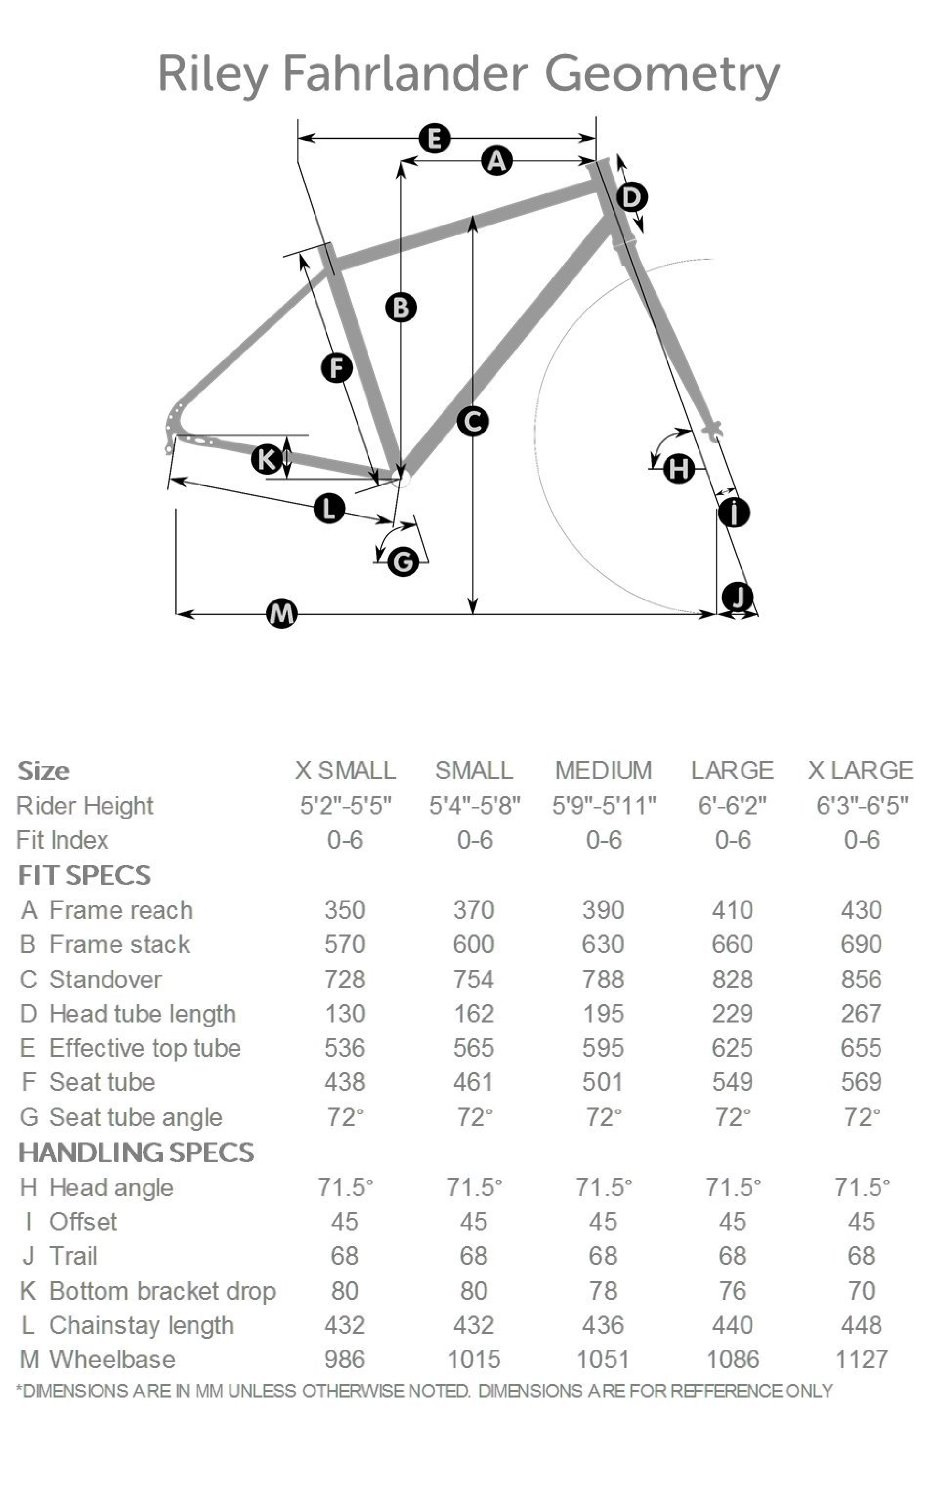 Picture of Fitwell Bicycle Company Fahrlander sizing chart